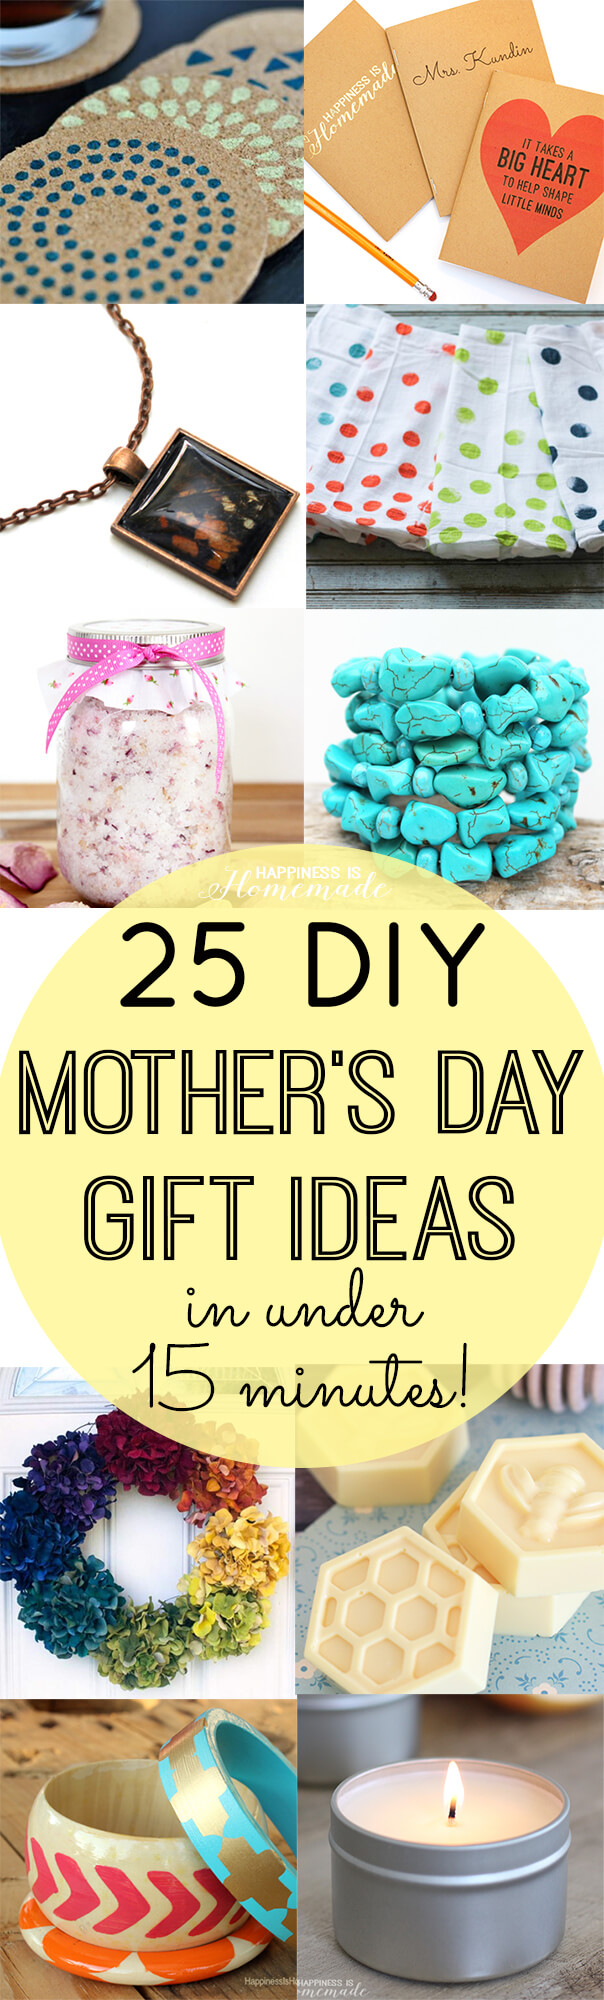 Awesome Diy Mother's Day Gifts Diy Mother S Day Gifts In Under 15 Minutes Happiness Is Homemade